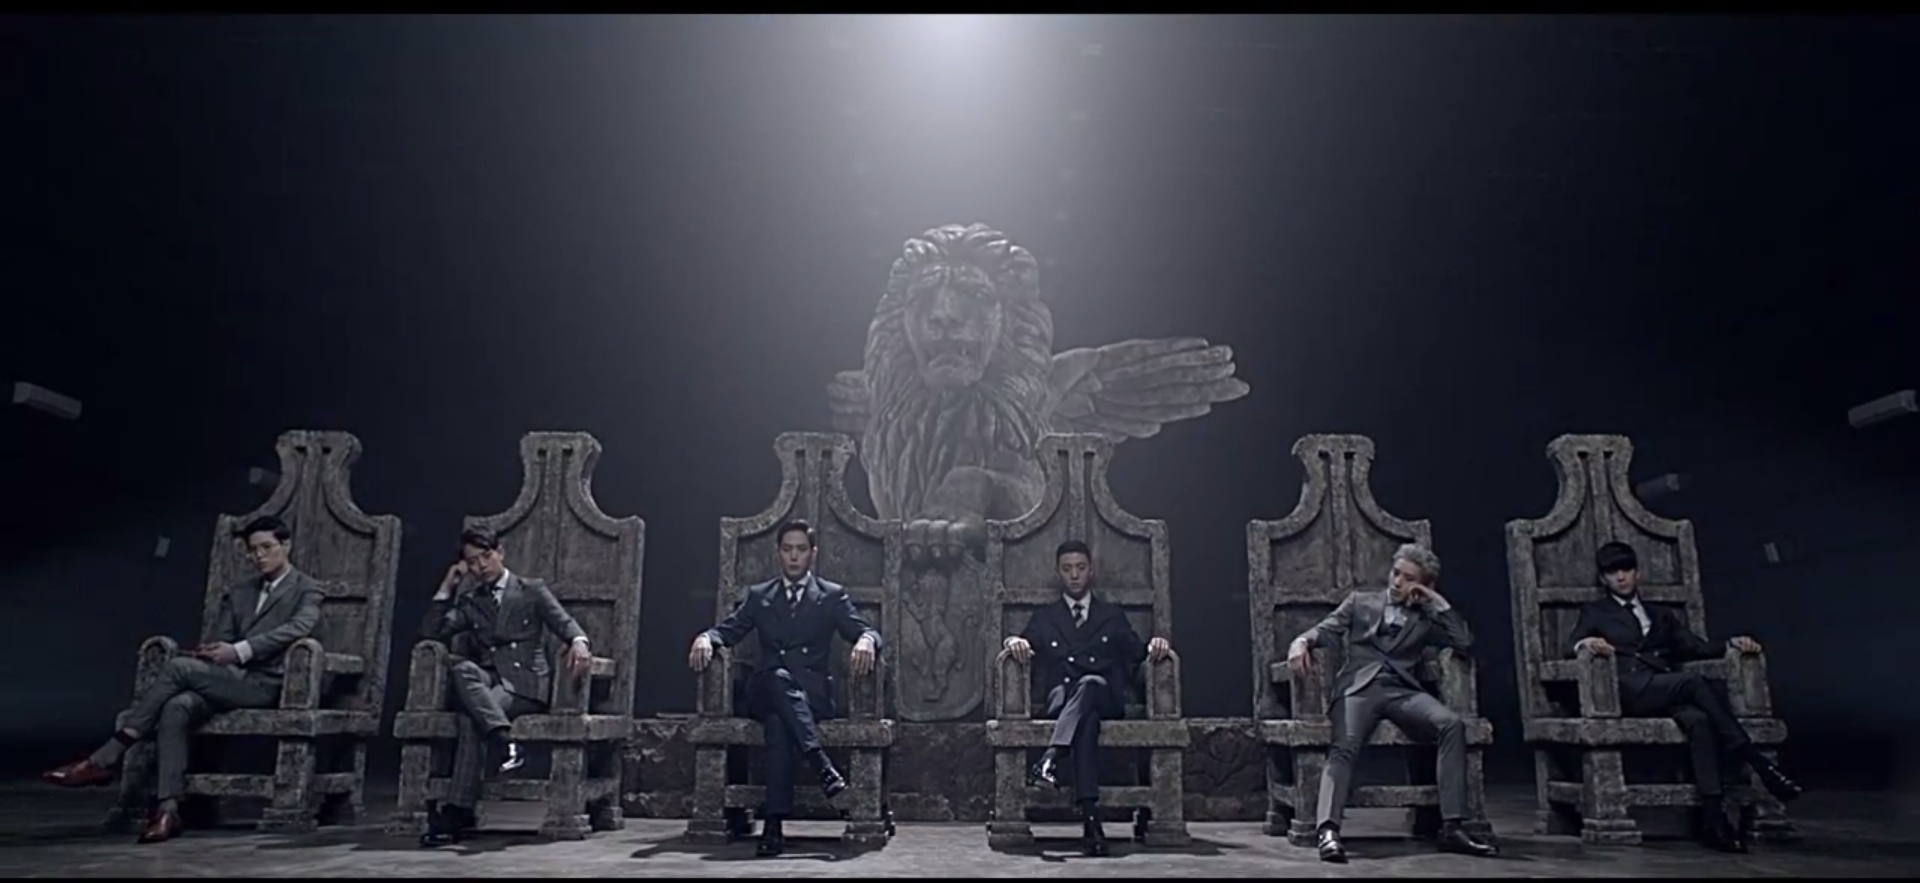 [ENG] B.A.P – Young, Wild & Free